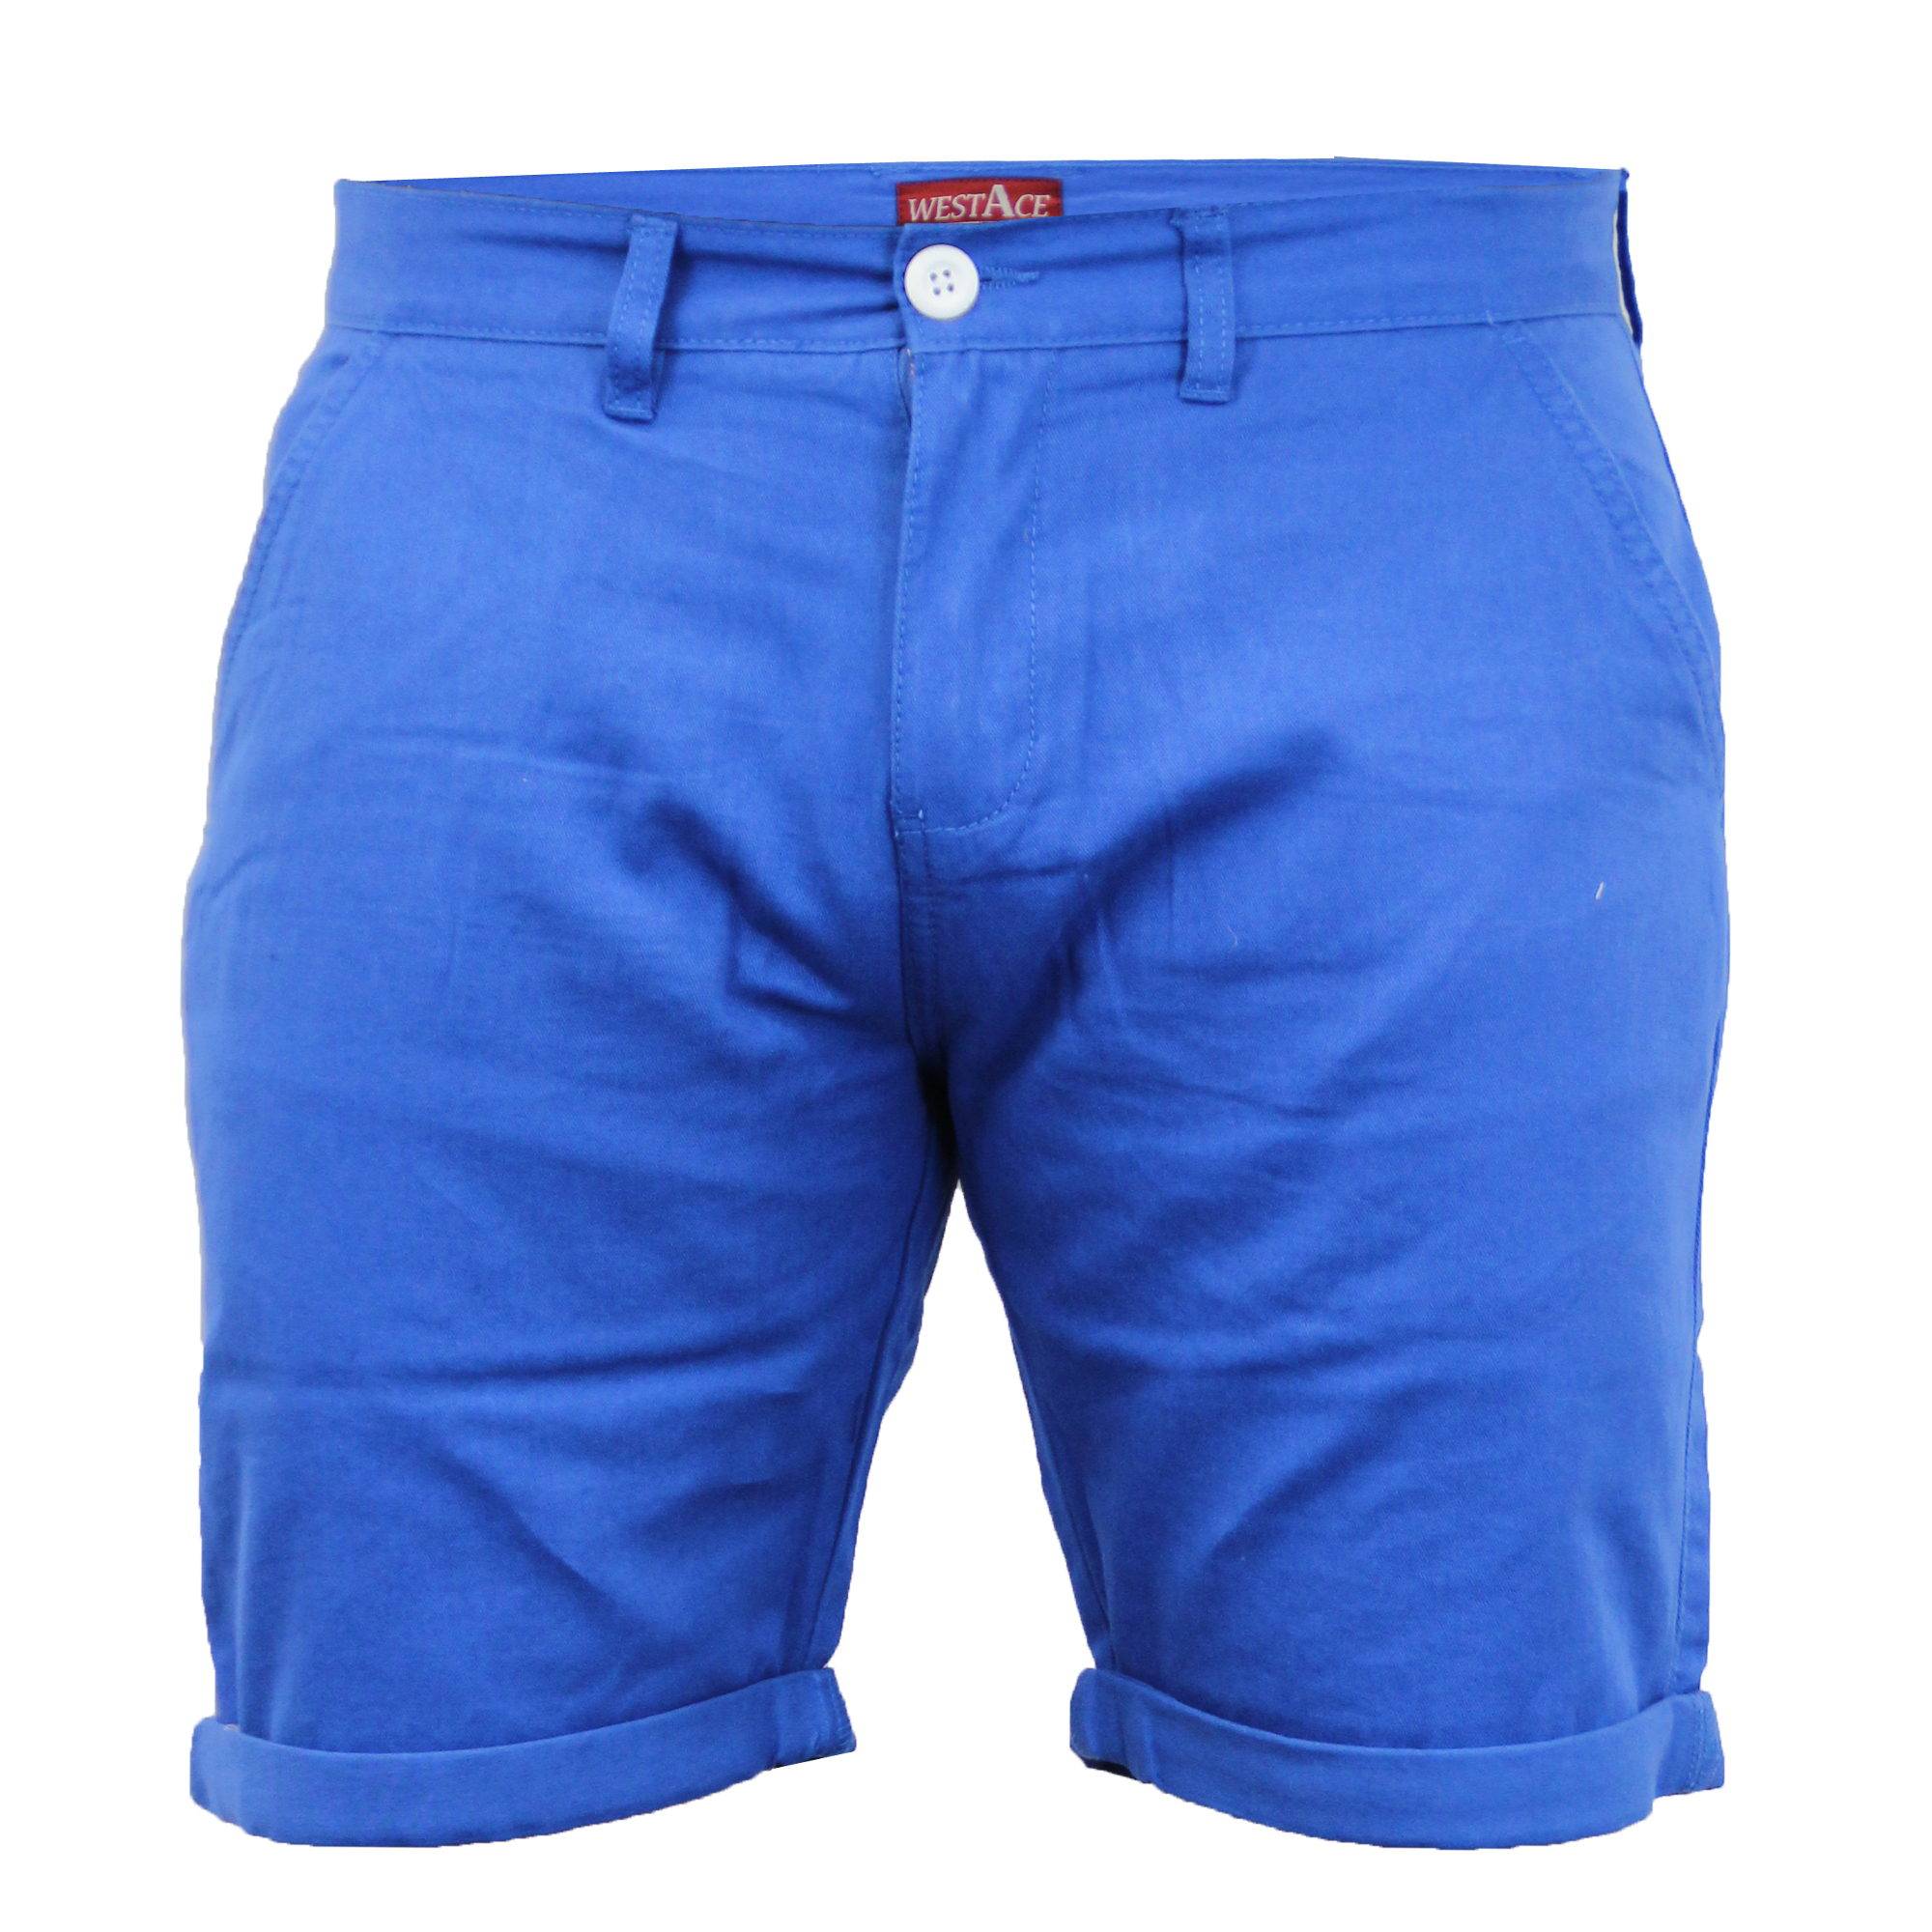 Mens-Chino-Shorts-Threadbare-Pants-Westace-Stallion-Knee-Length-Roll-Up-Summer thumbnail 48